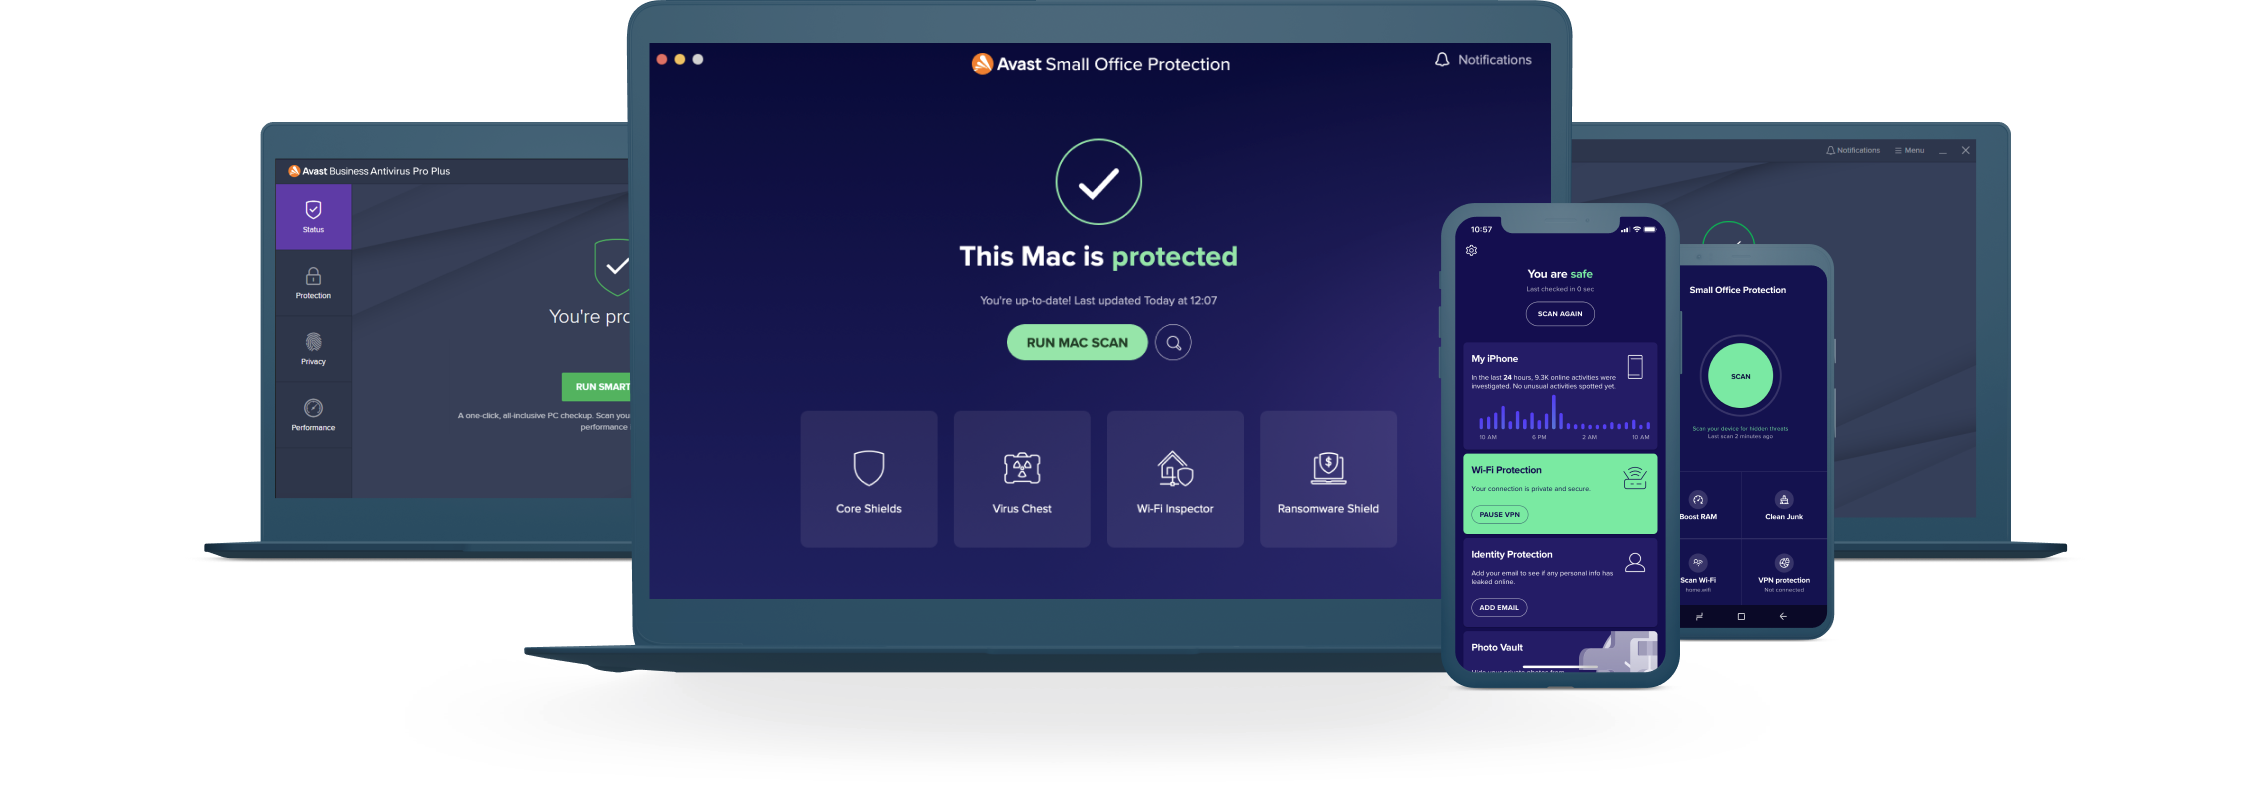 Protection against cyberthreats for up to 10 devices including PC, Mac, iOS, & Android.